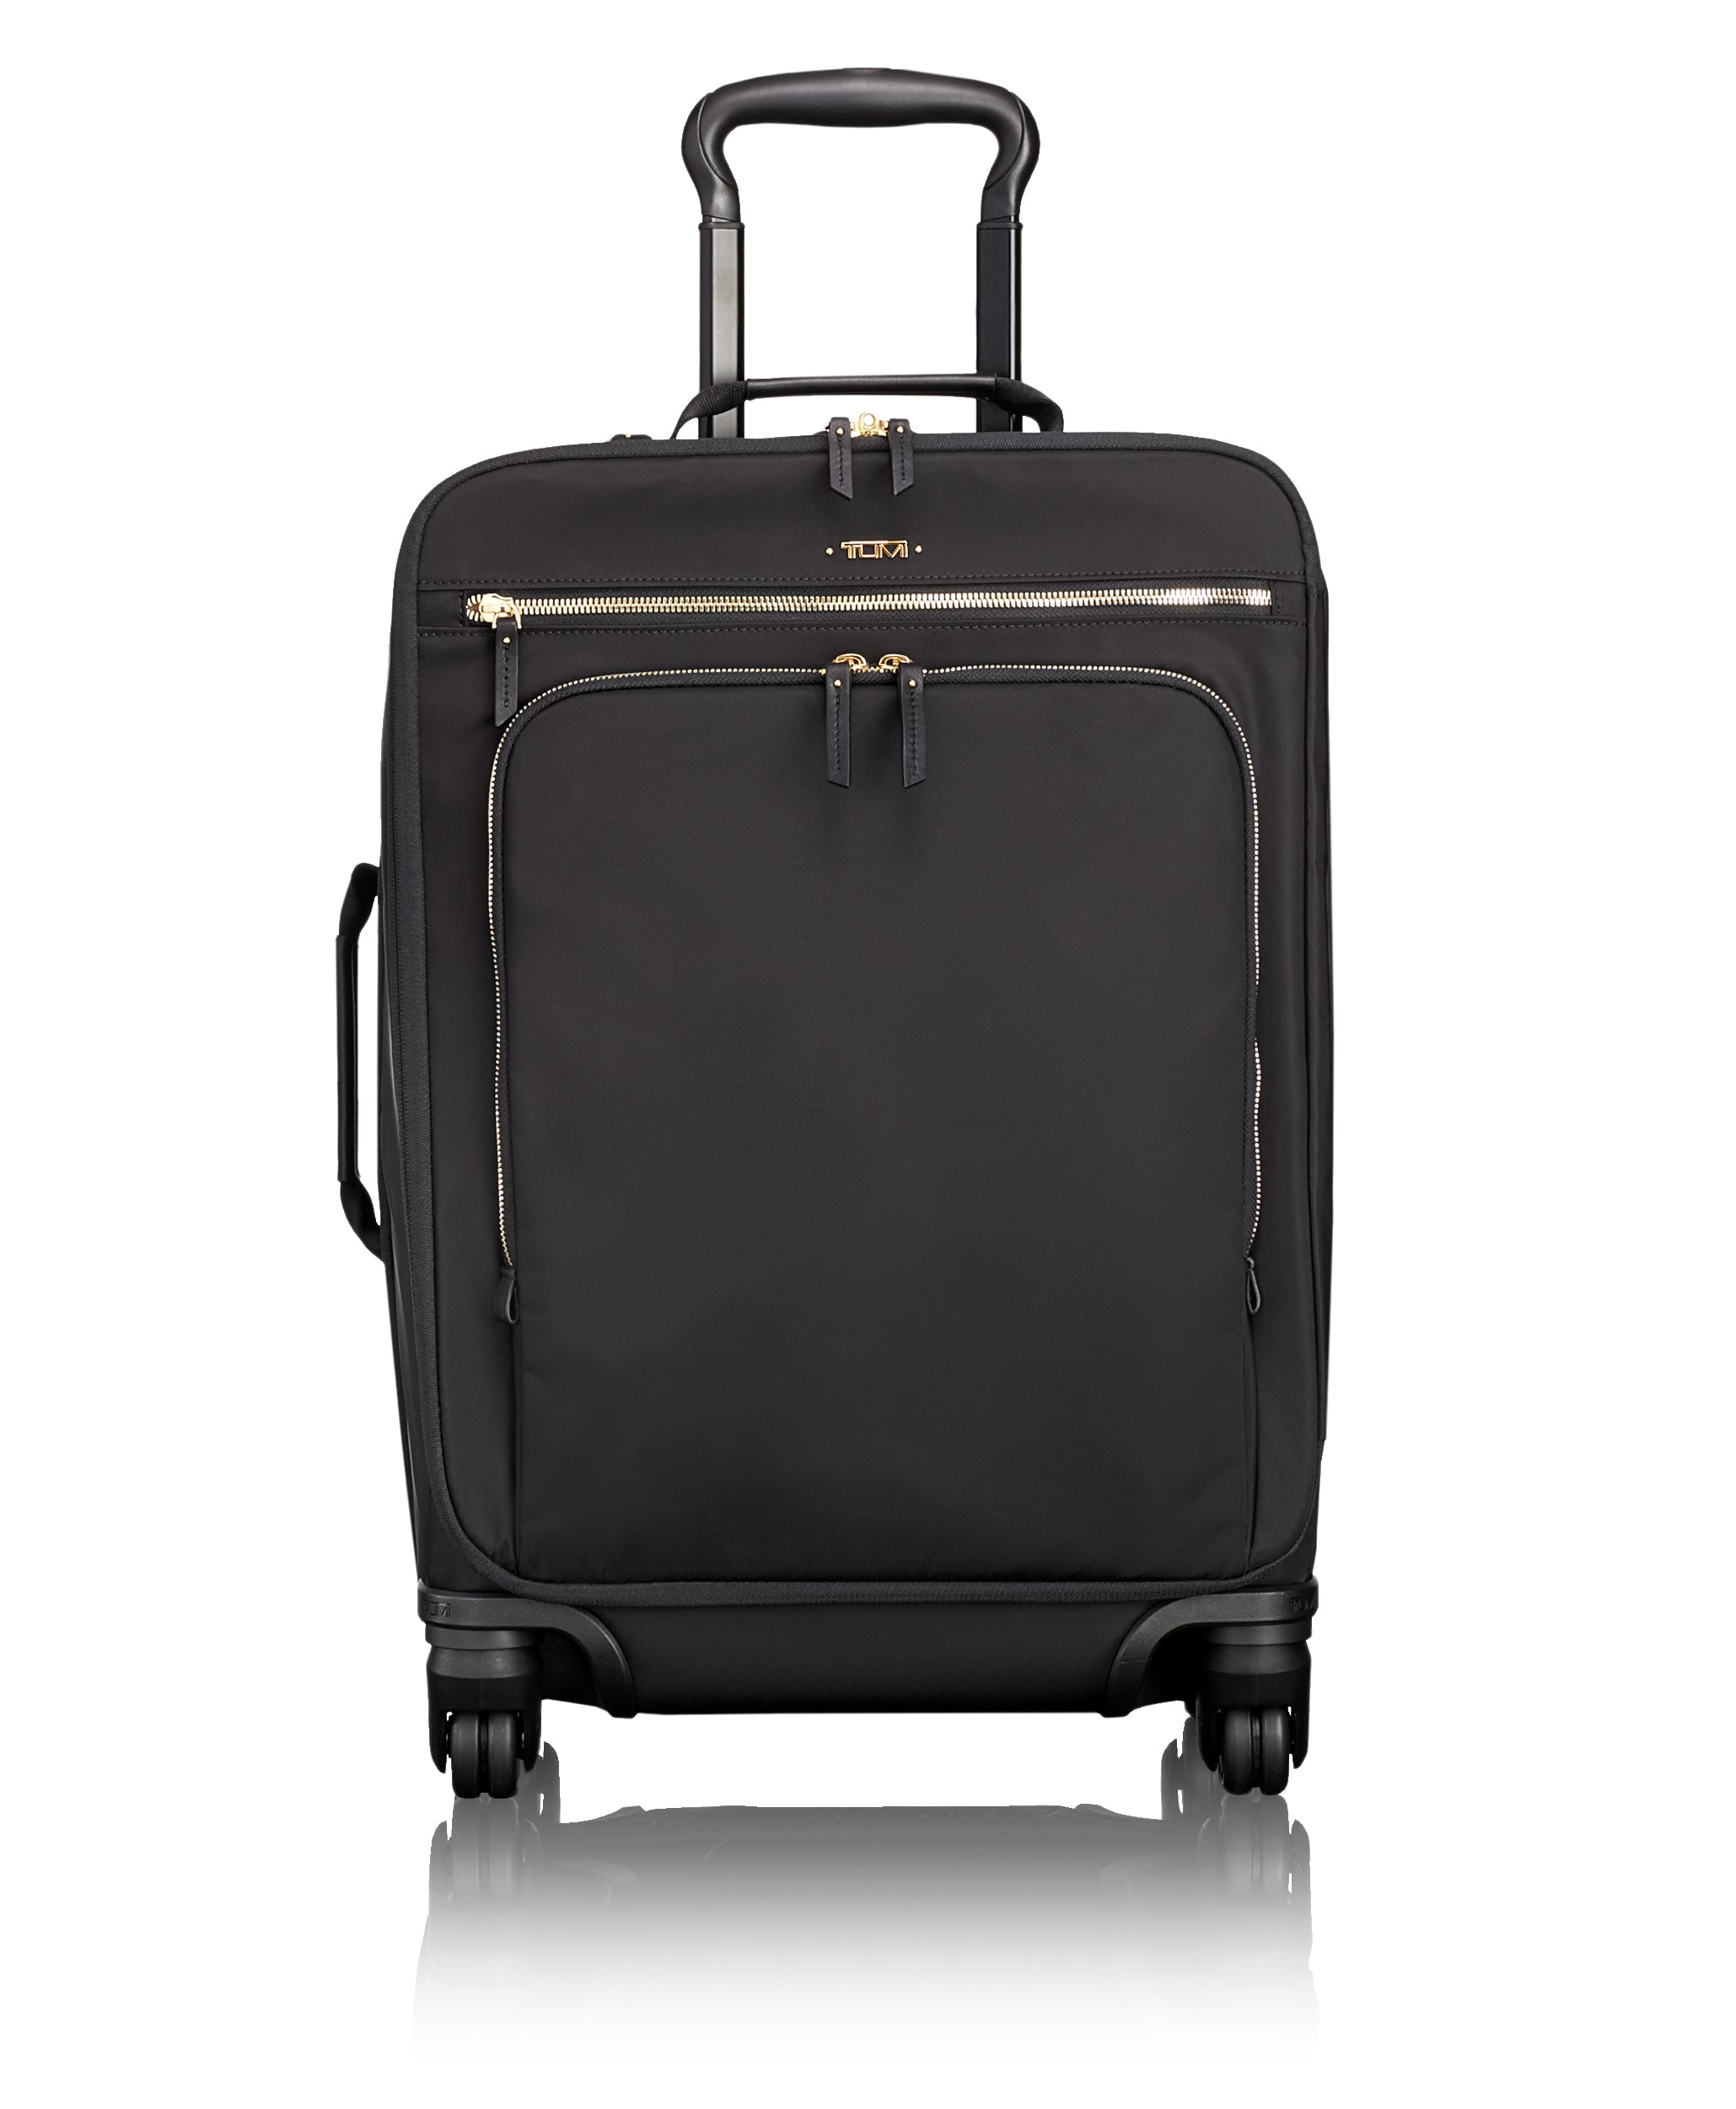 Tumi Voyageur Super Léger International Carry on-Black | MEGO